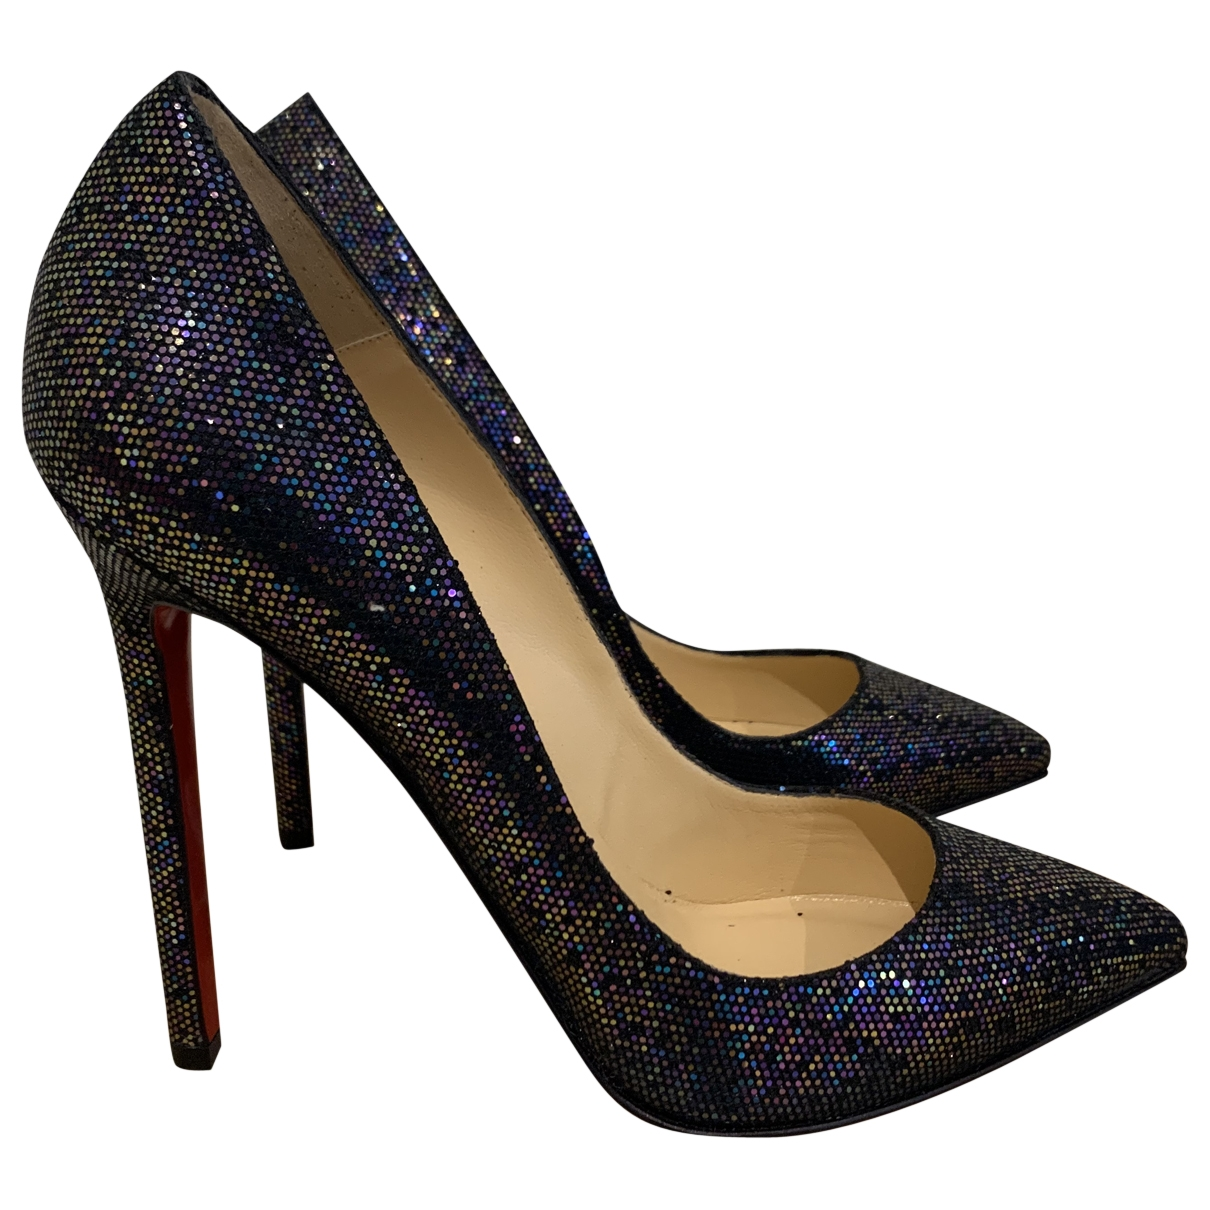 Christian Louboutin Pigalle Blue Glitter Heels for Women 37 EU